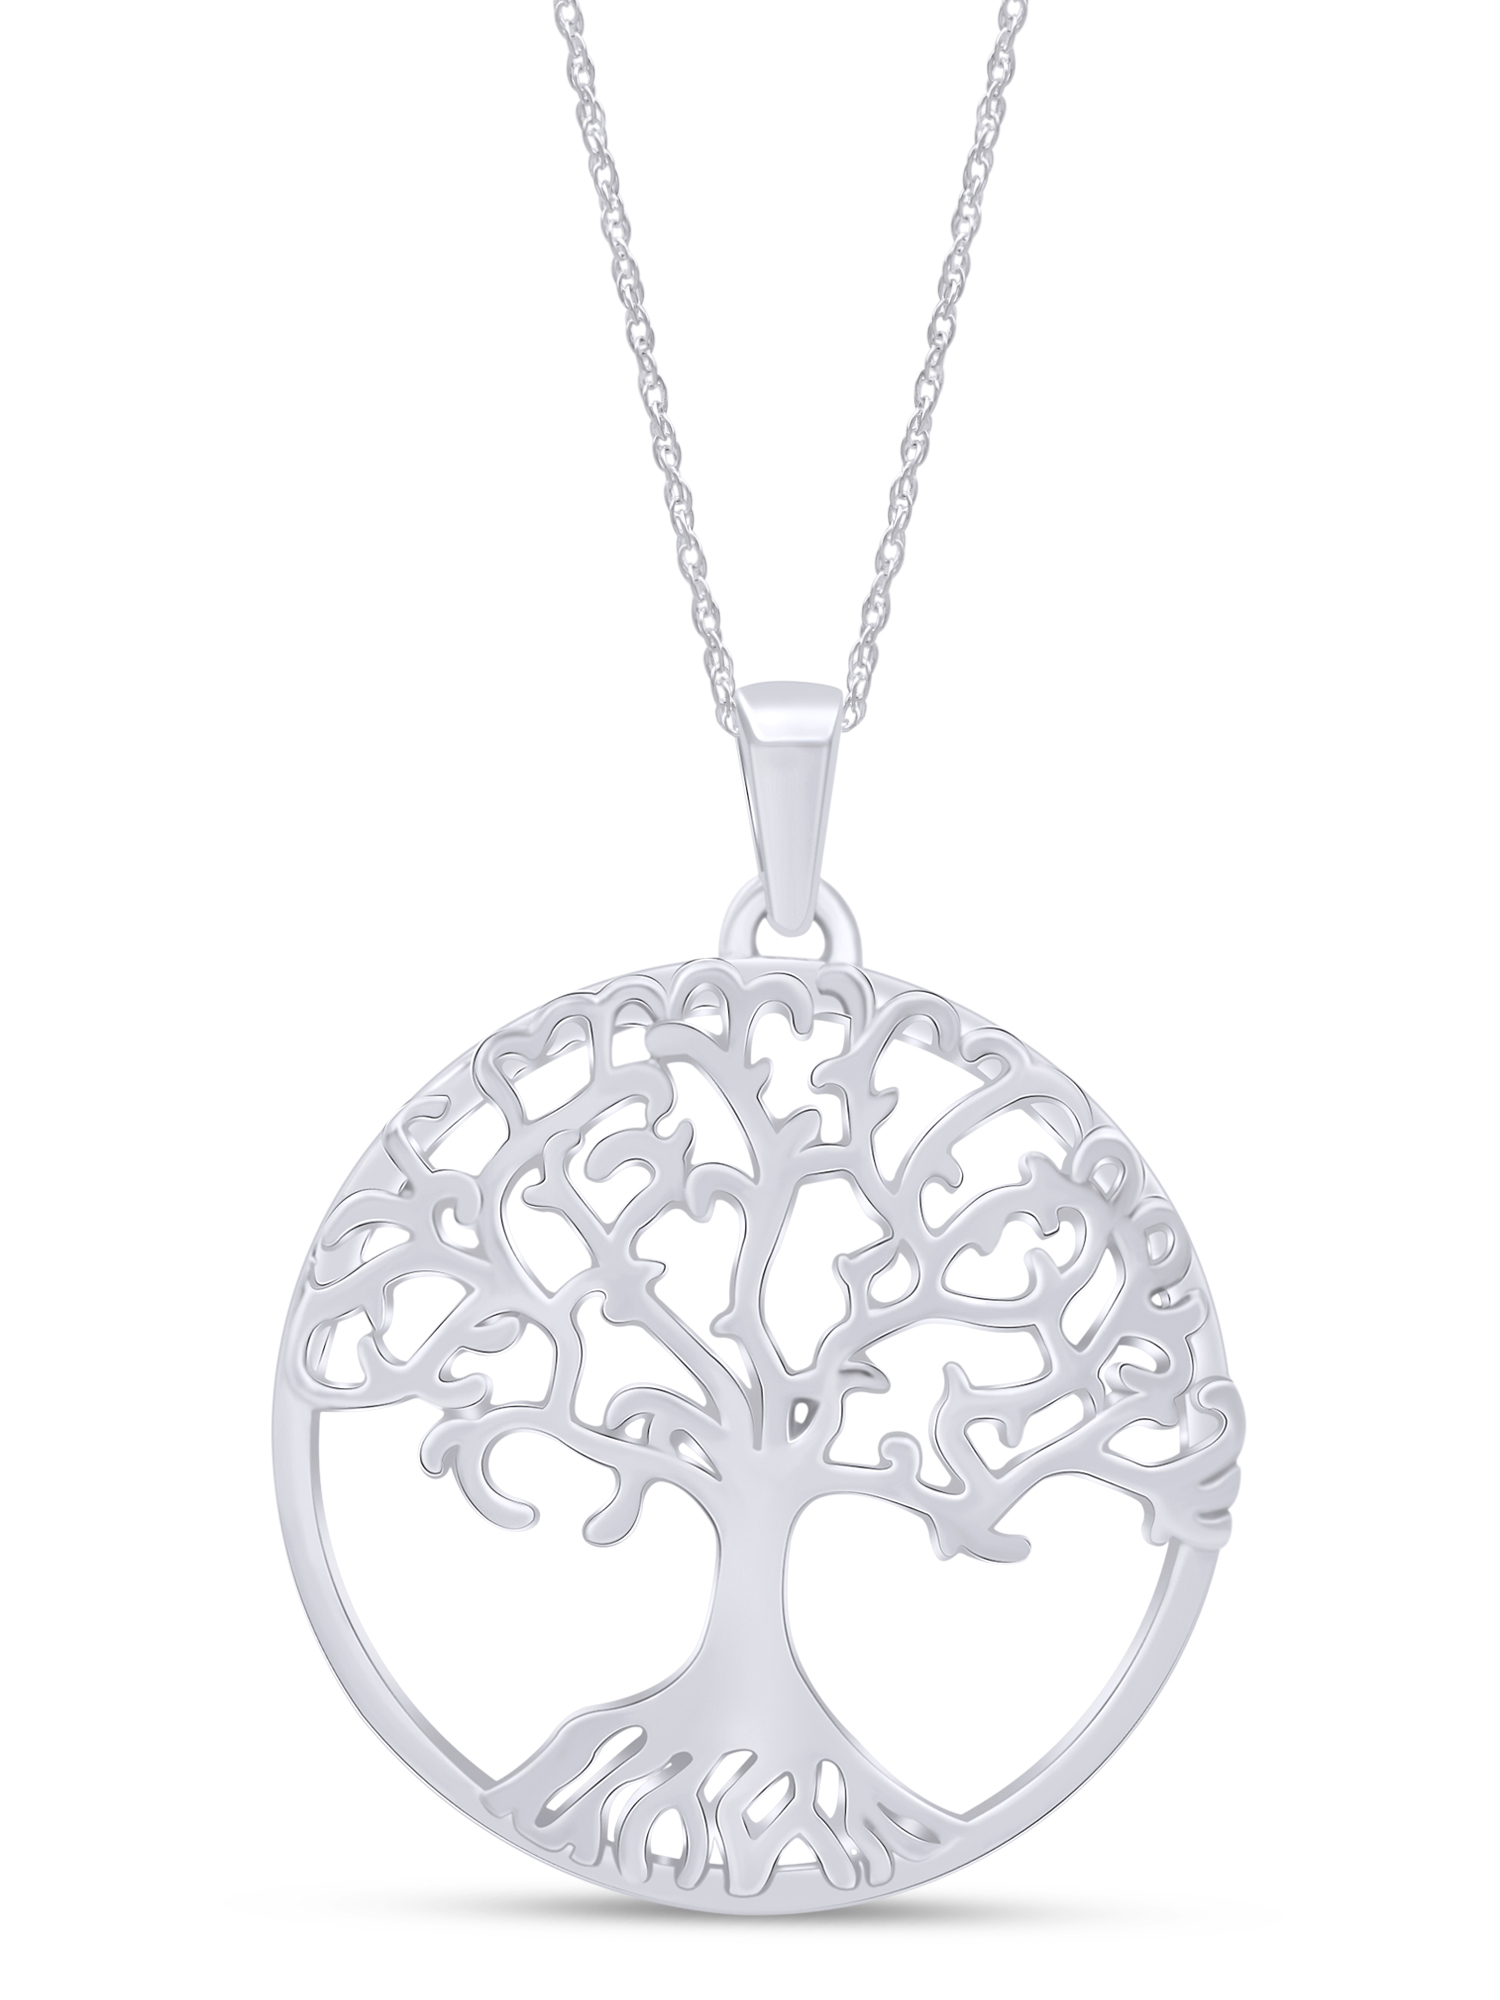 Tree of Life Necklace Tree Jewelry Botanica Necklace Sterling Silver Tree Necklace